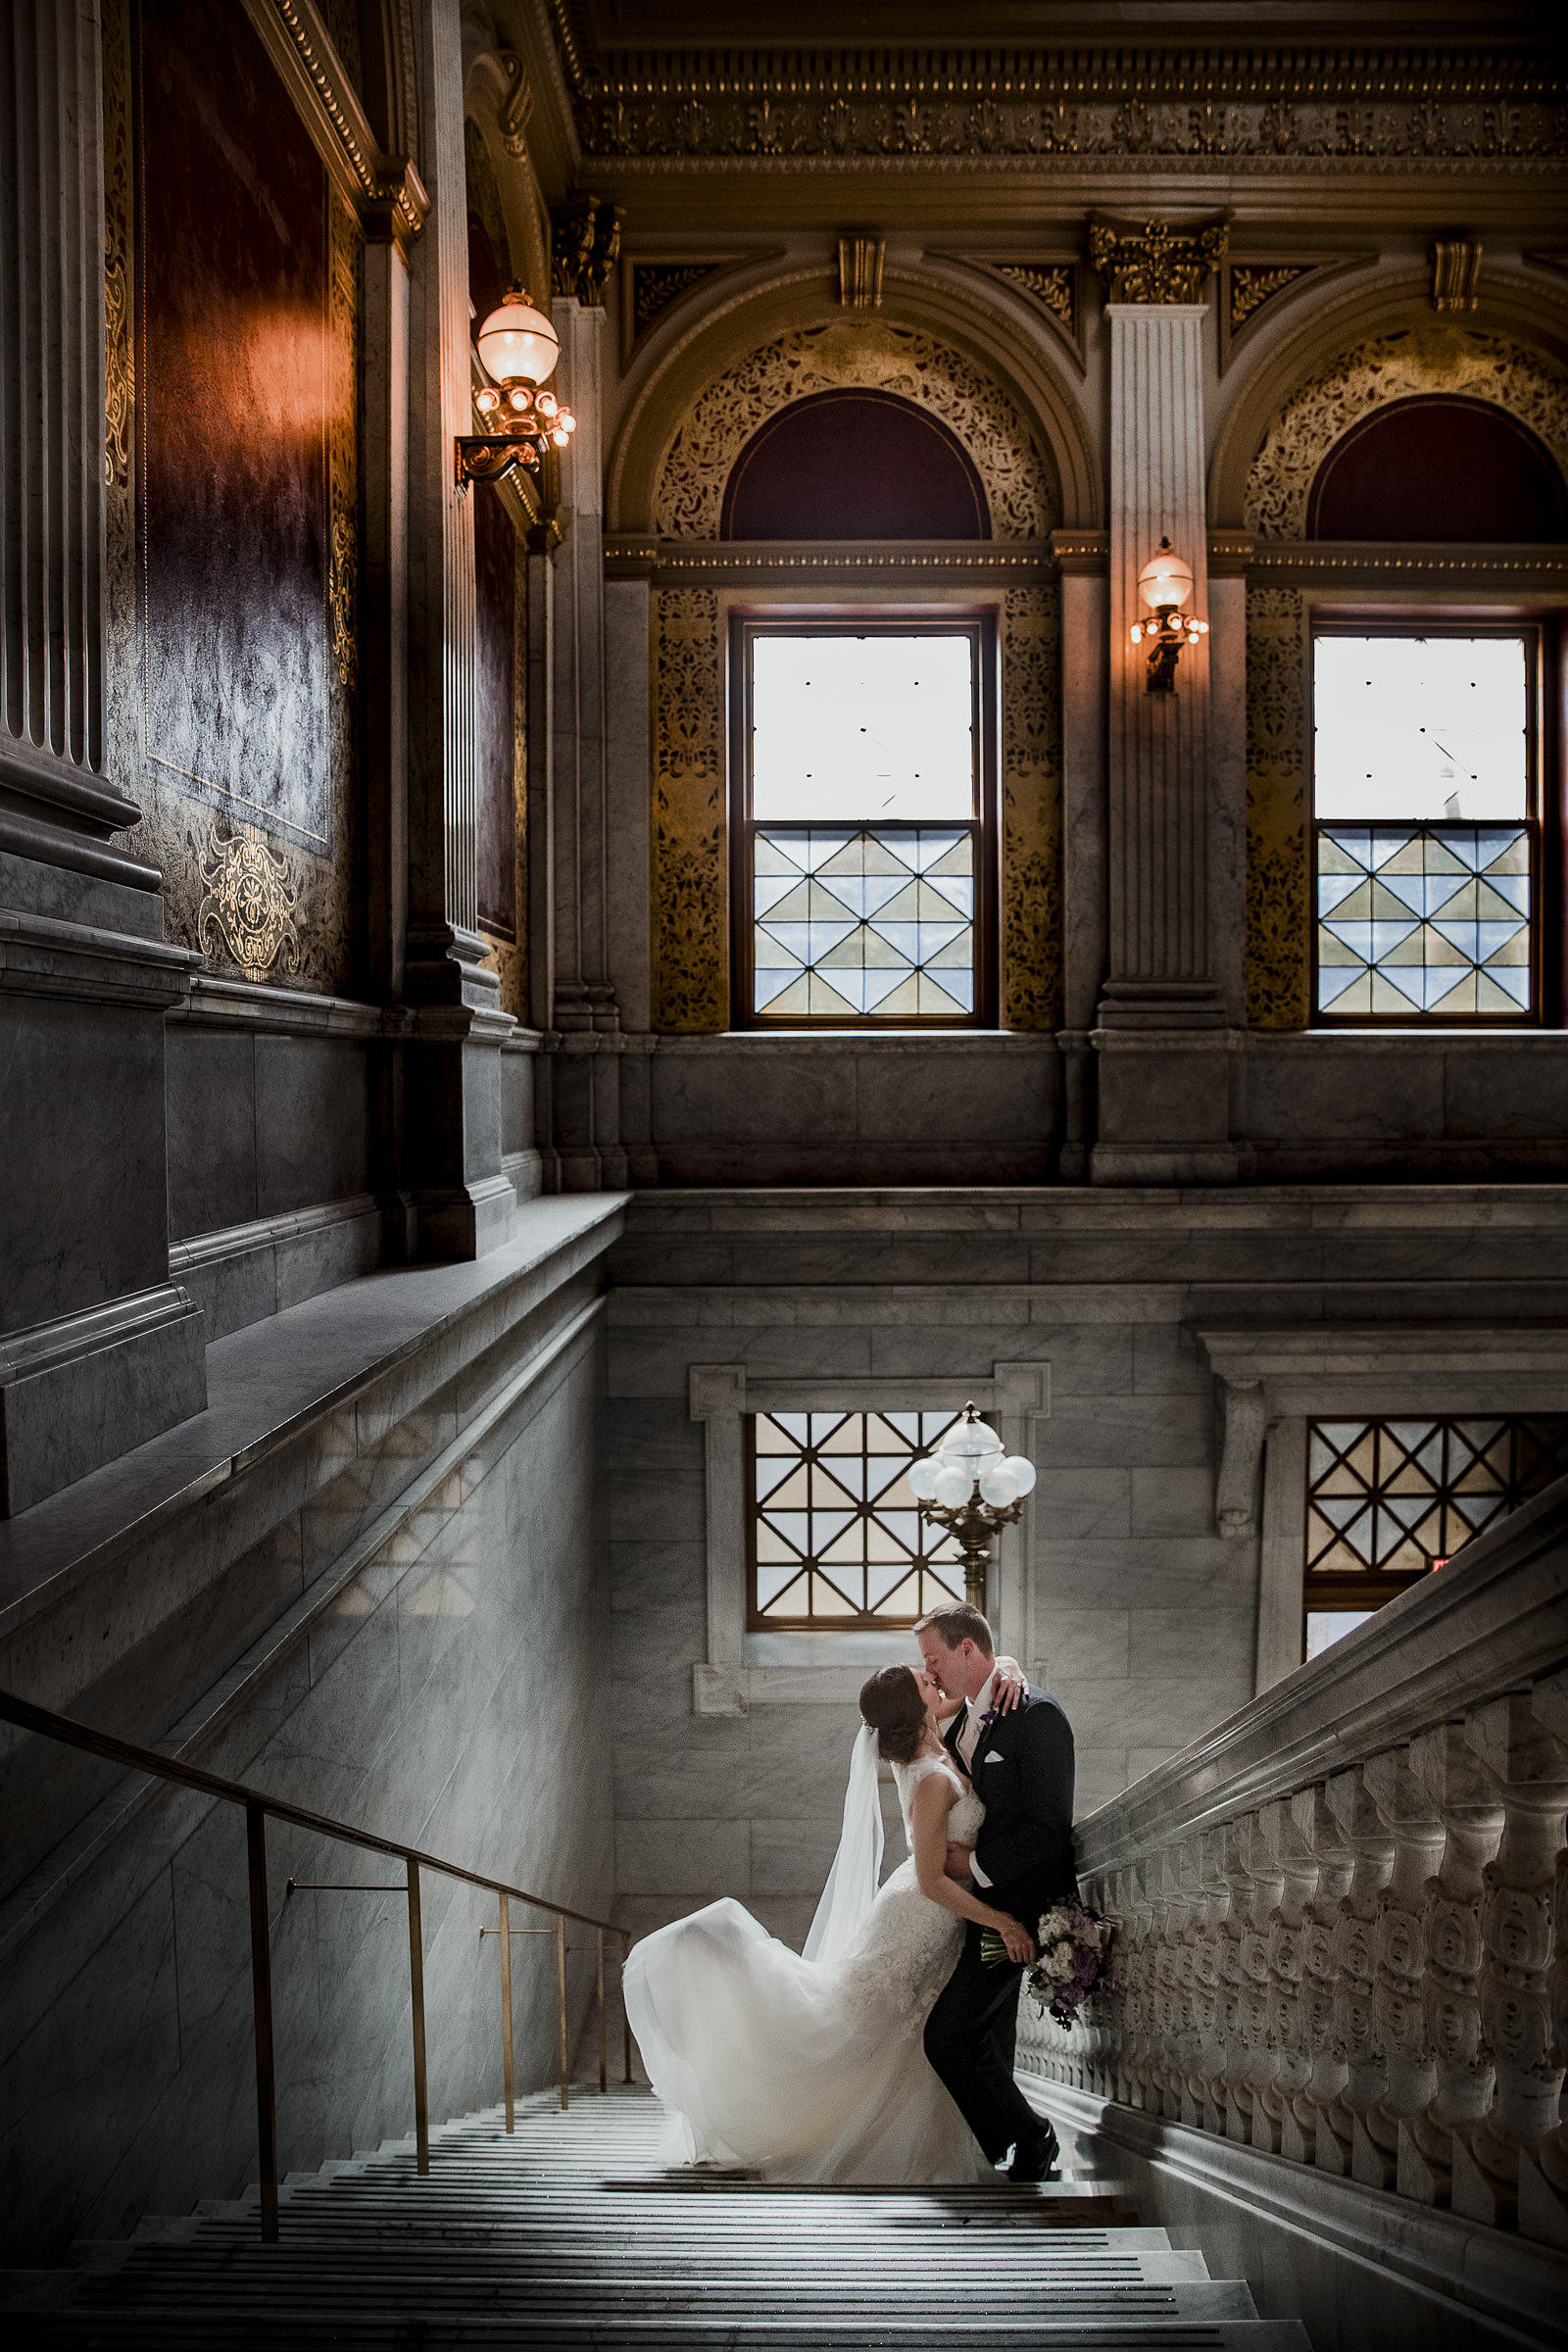 couple embracing and kissing while standing on a stone staircase wearing wedding clothes